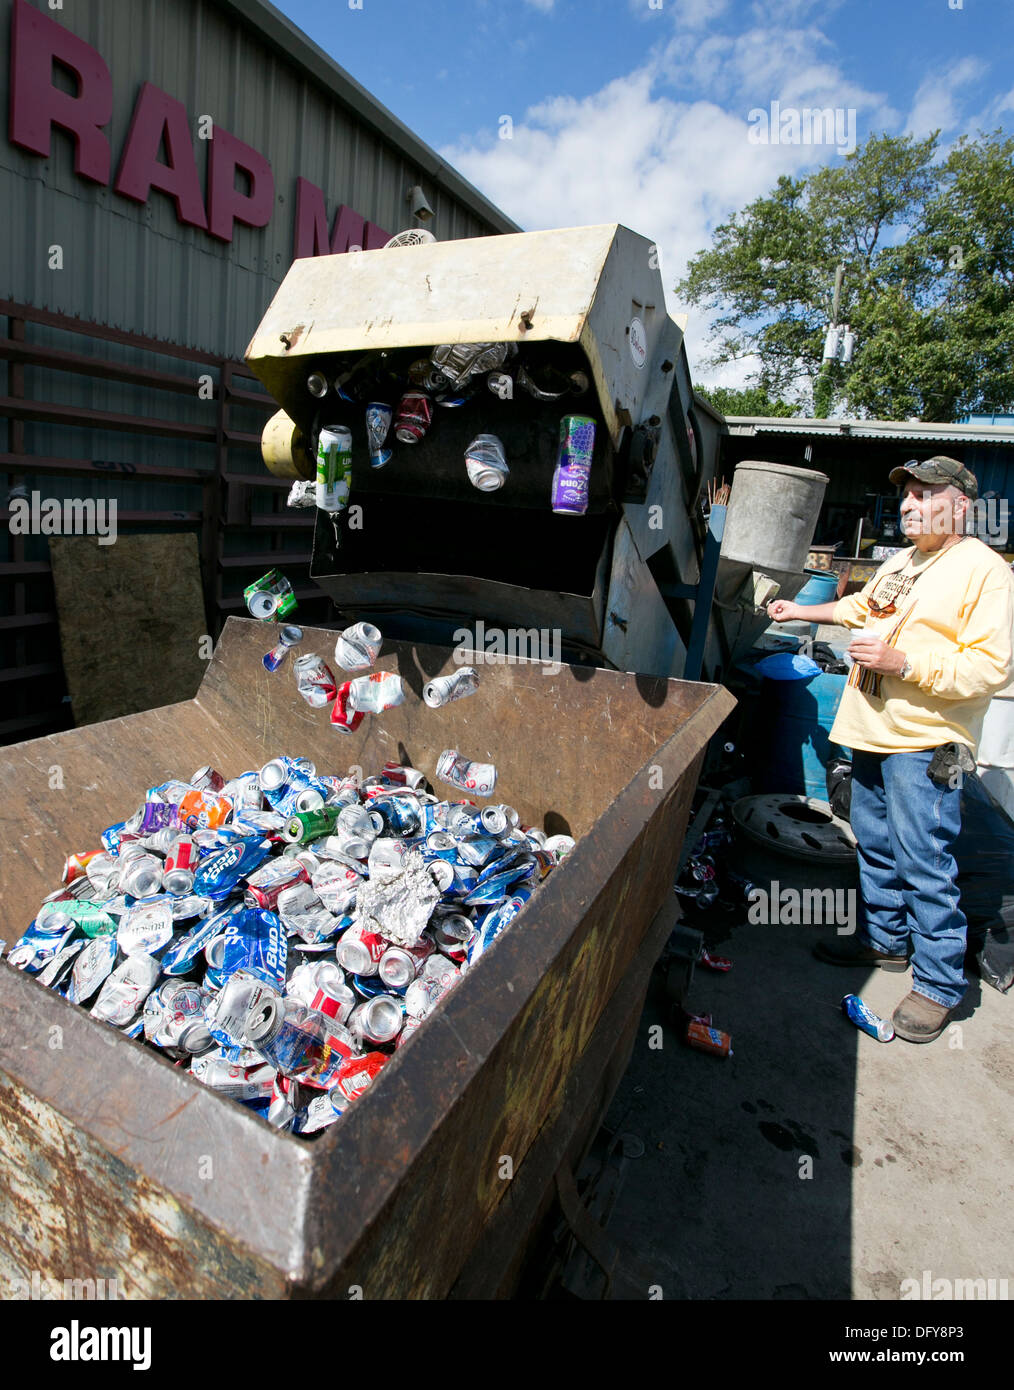 Male employee uses machine to crush aluminum cans at a metal recycling company in Texas Stock Photo